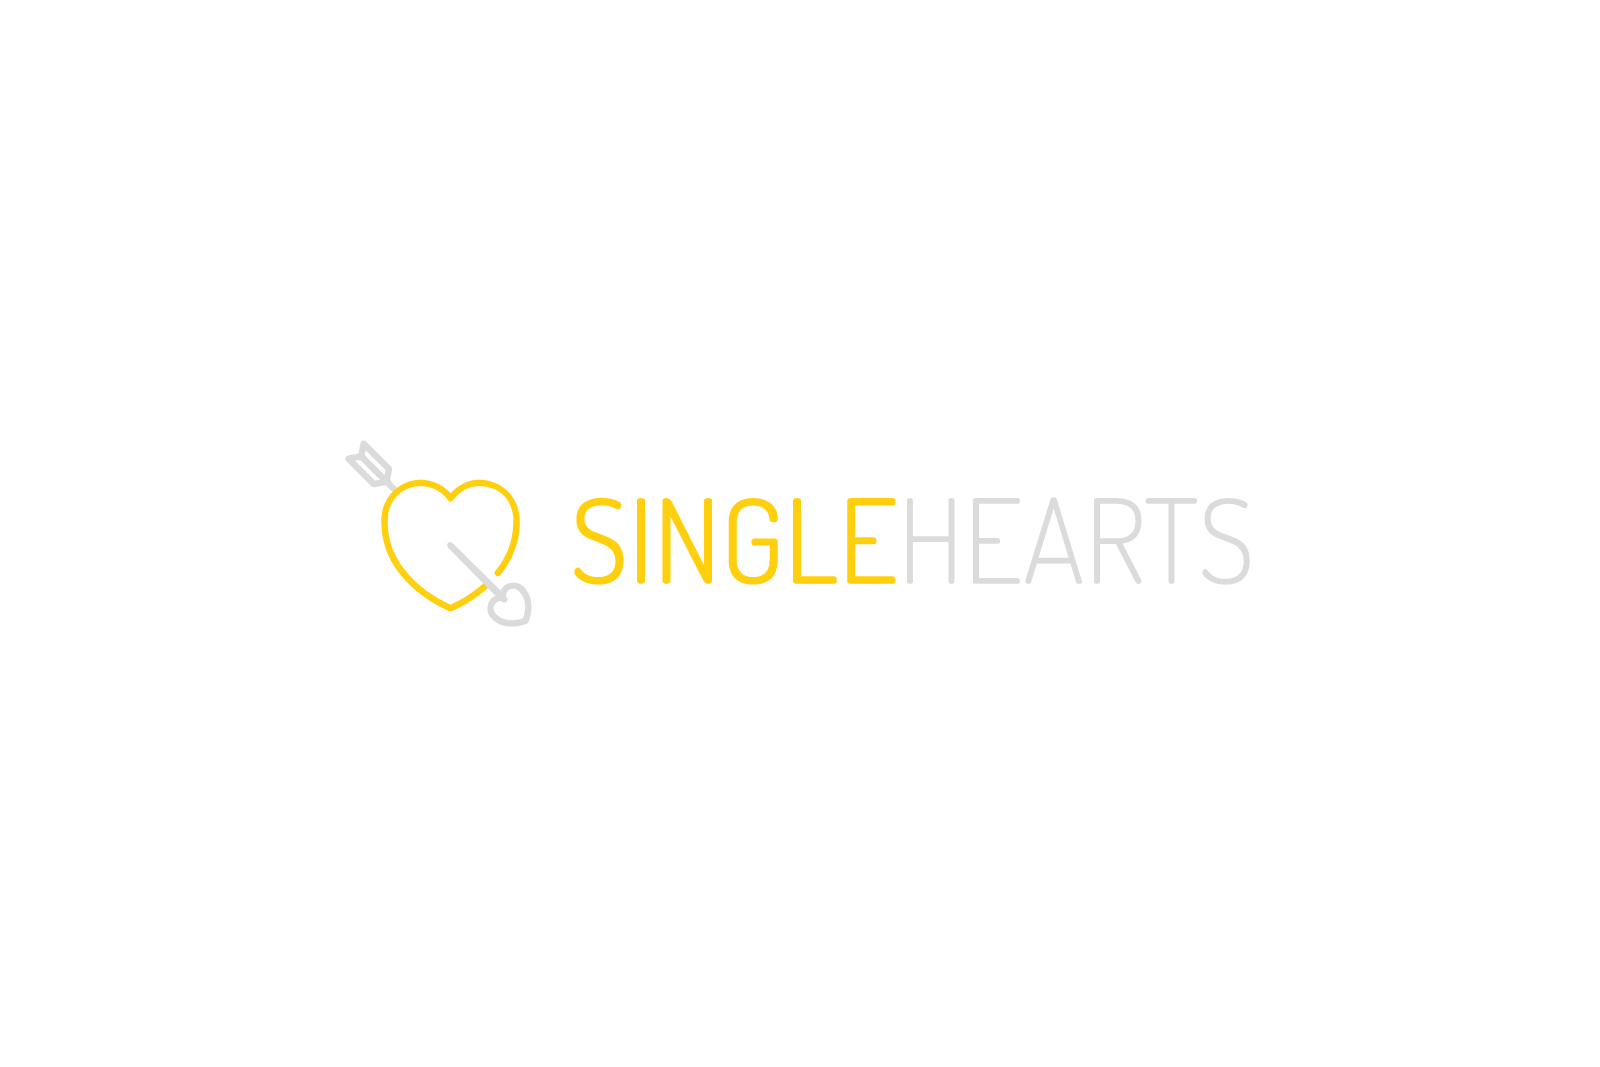 basaridesign_single-hearts